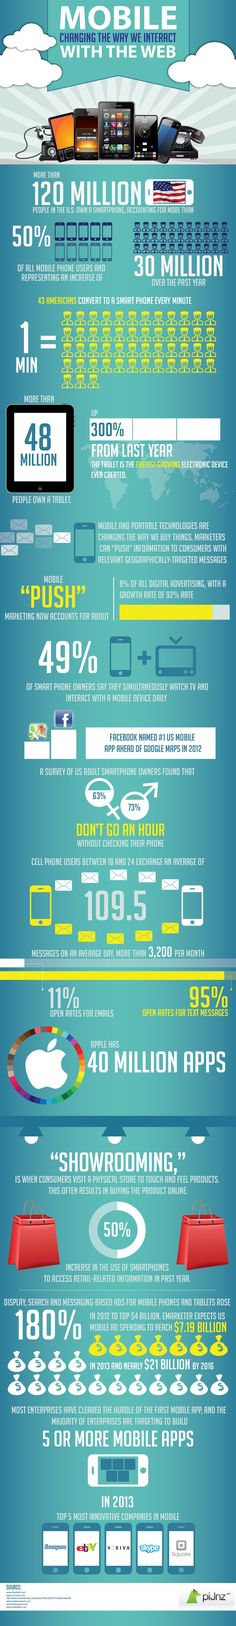 Mobile changing the way we interact with the web